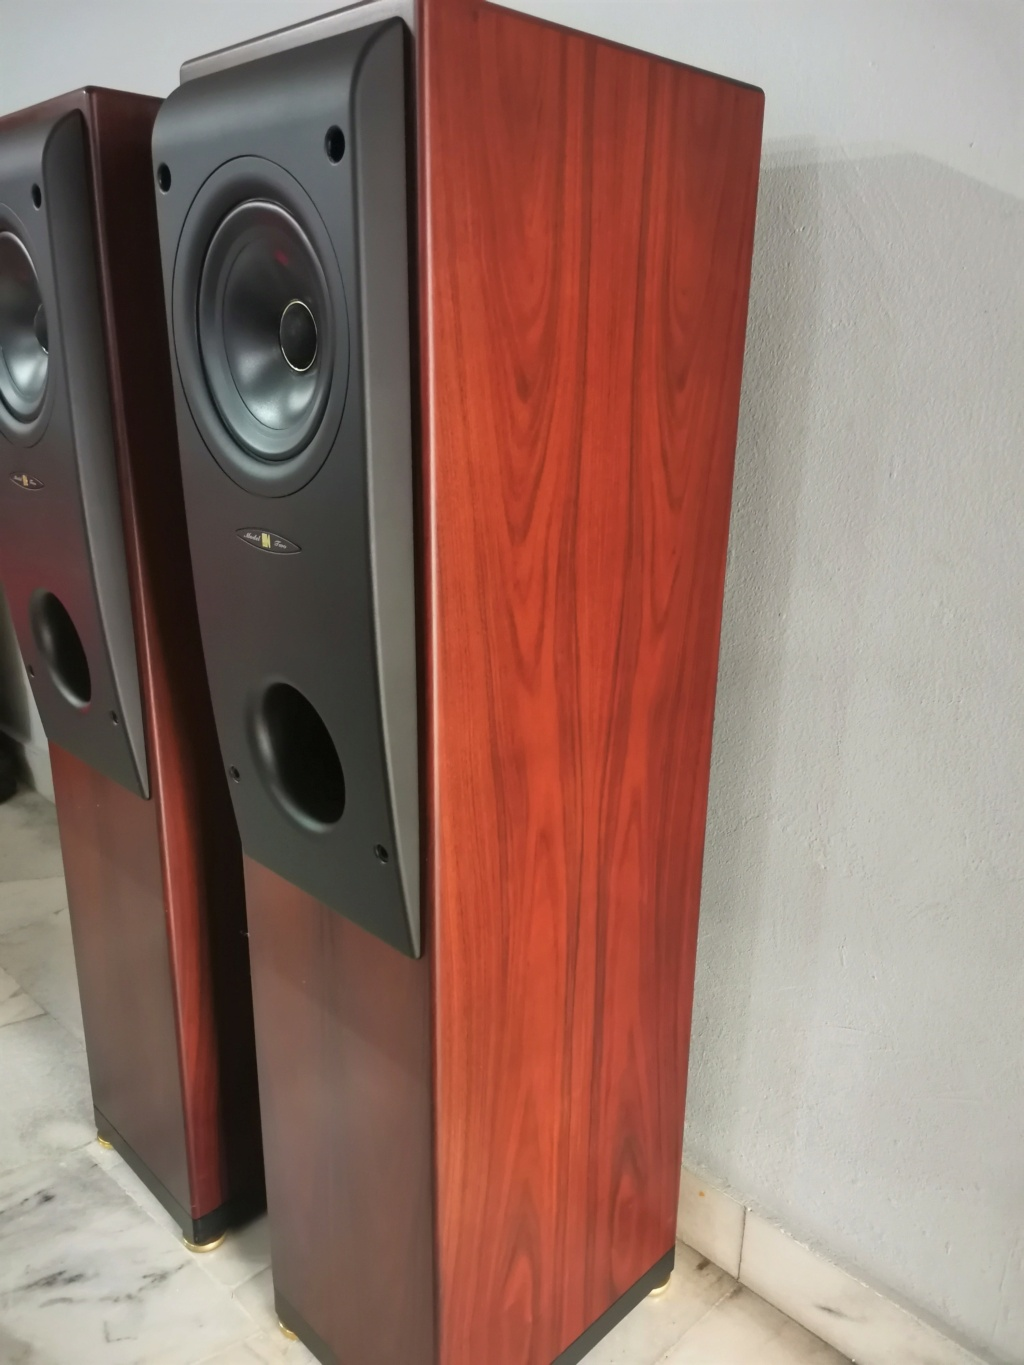 Kef reference model 2 (used) Img_2015